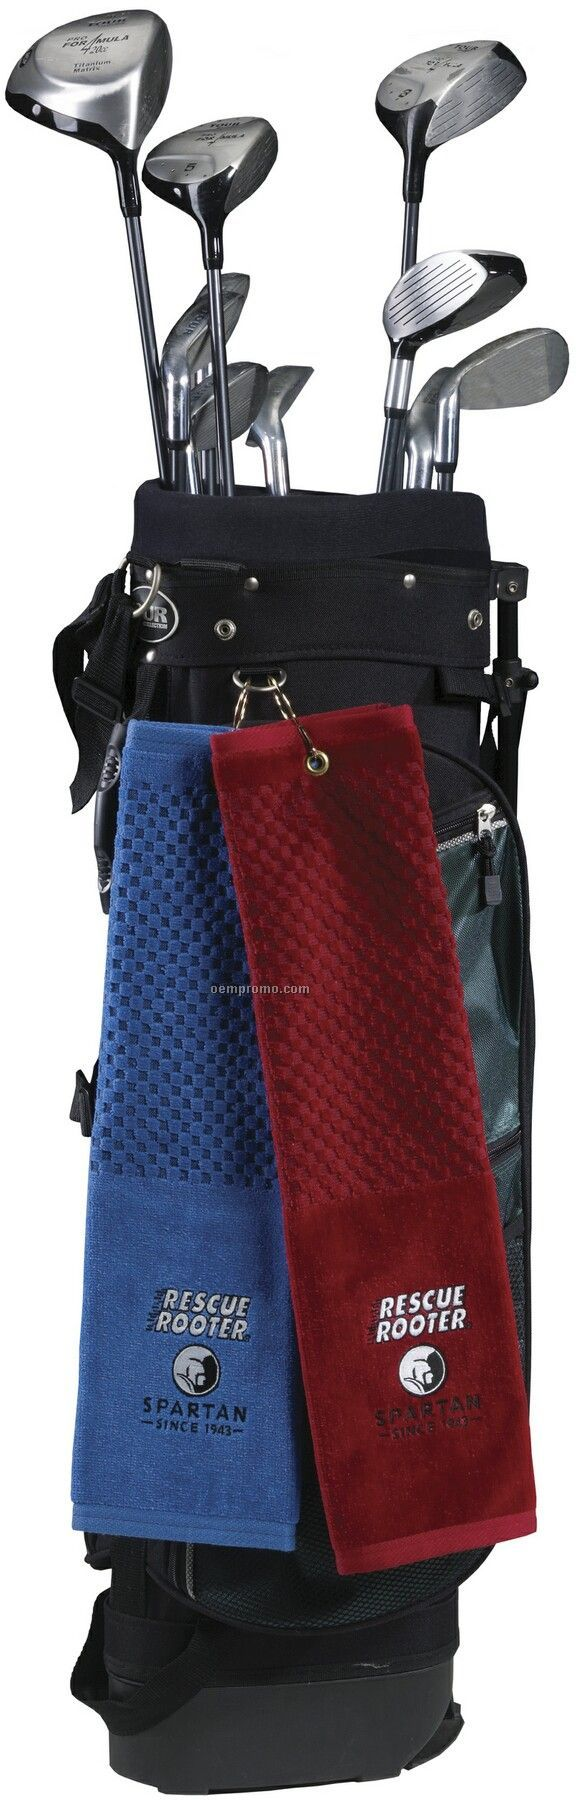 Checkered Terry Velour Jacquard Golf Towel W/Trifold Hook & Grommet